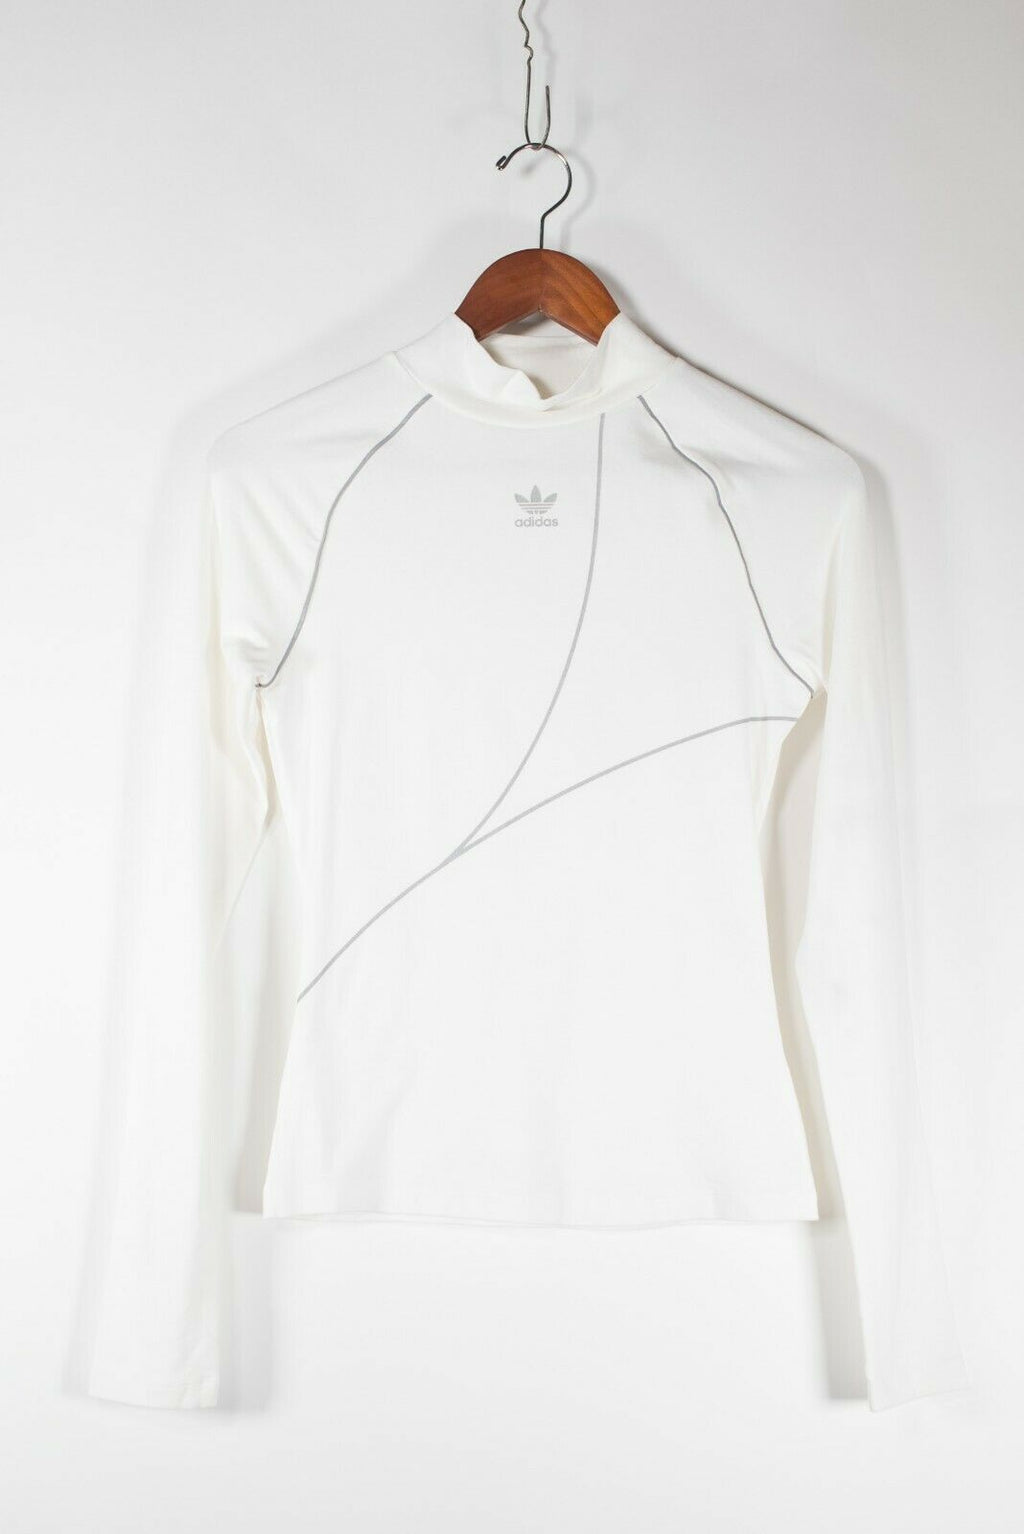 Adidas Originals Womens Size XS White Mock Neck Shirt Long Sleeve Nylon Logo Top